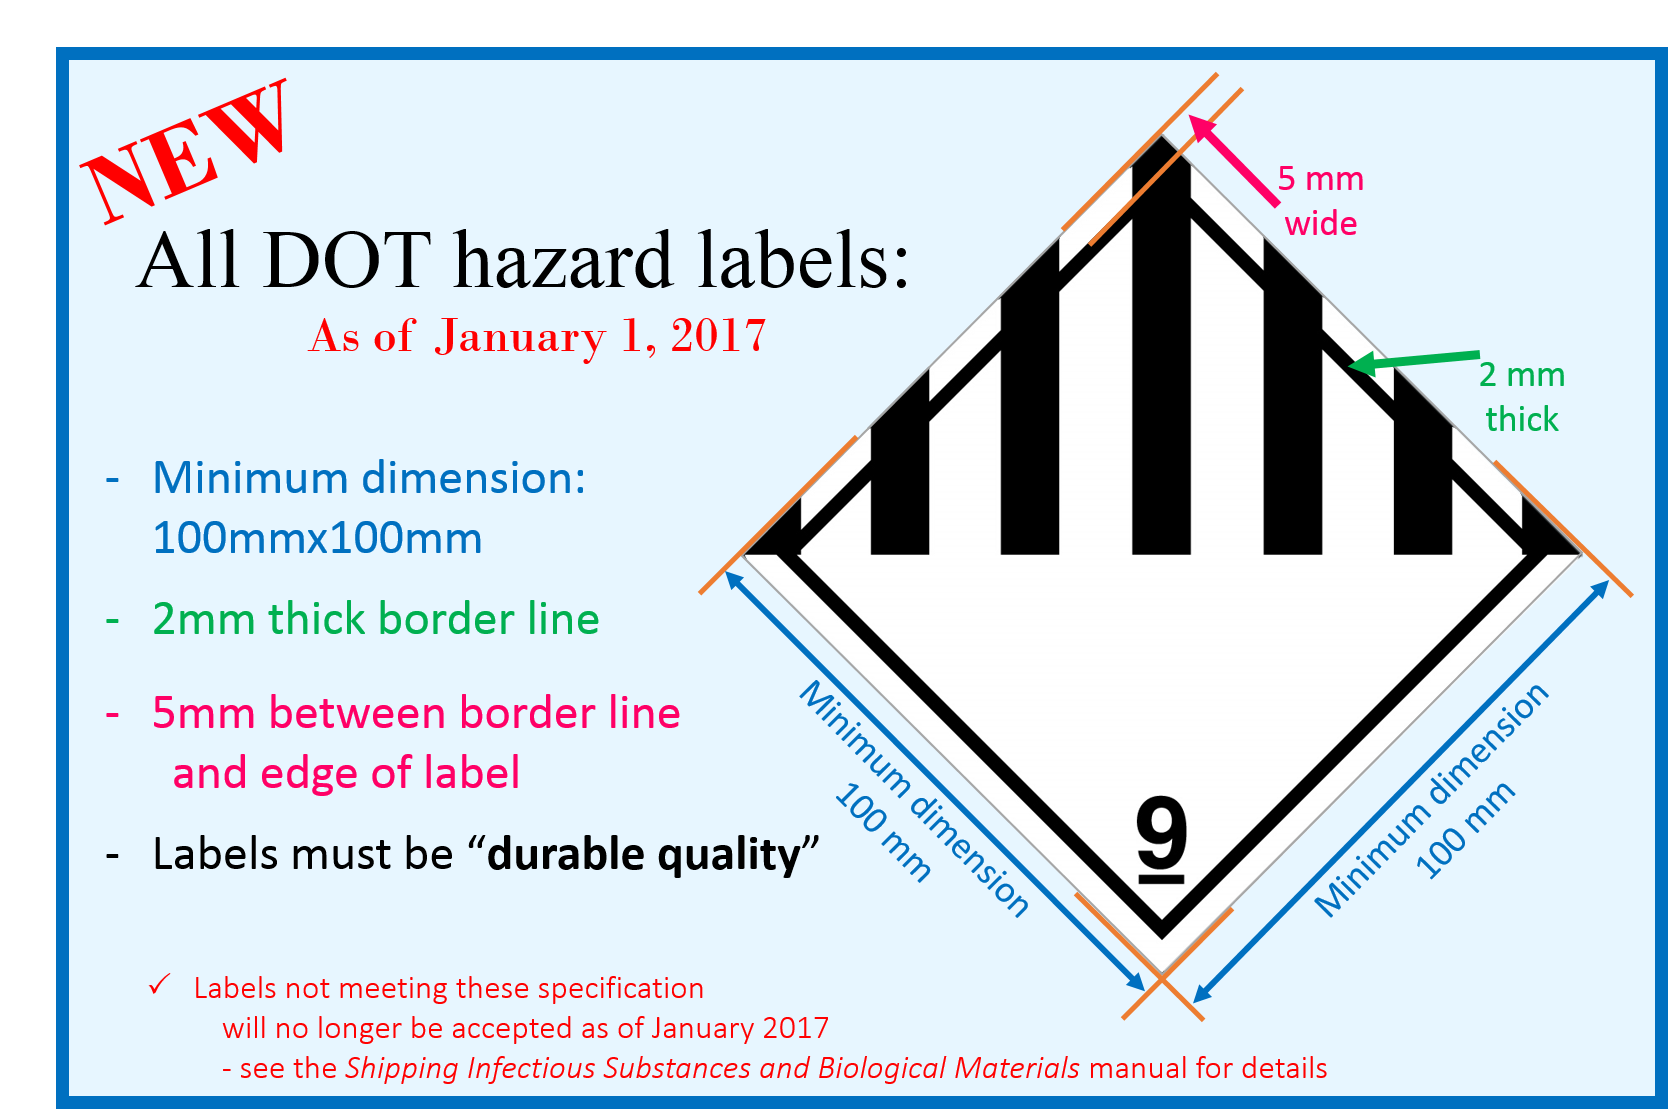 DOT hazard label update 2017